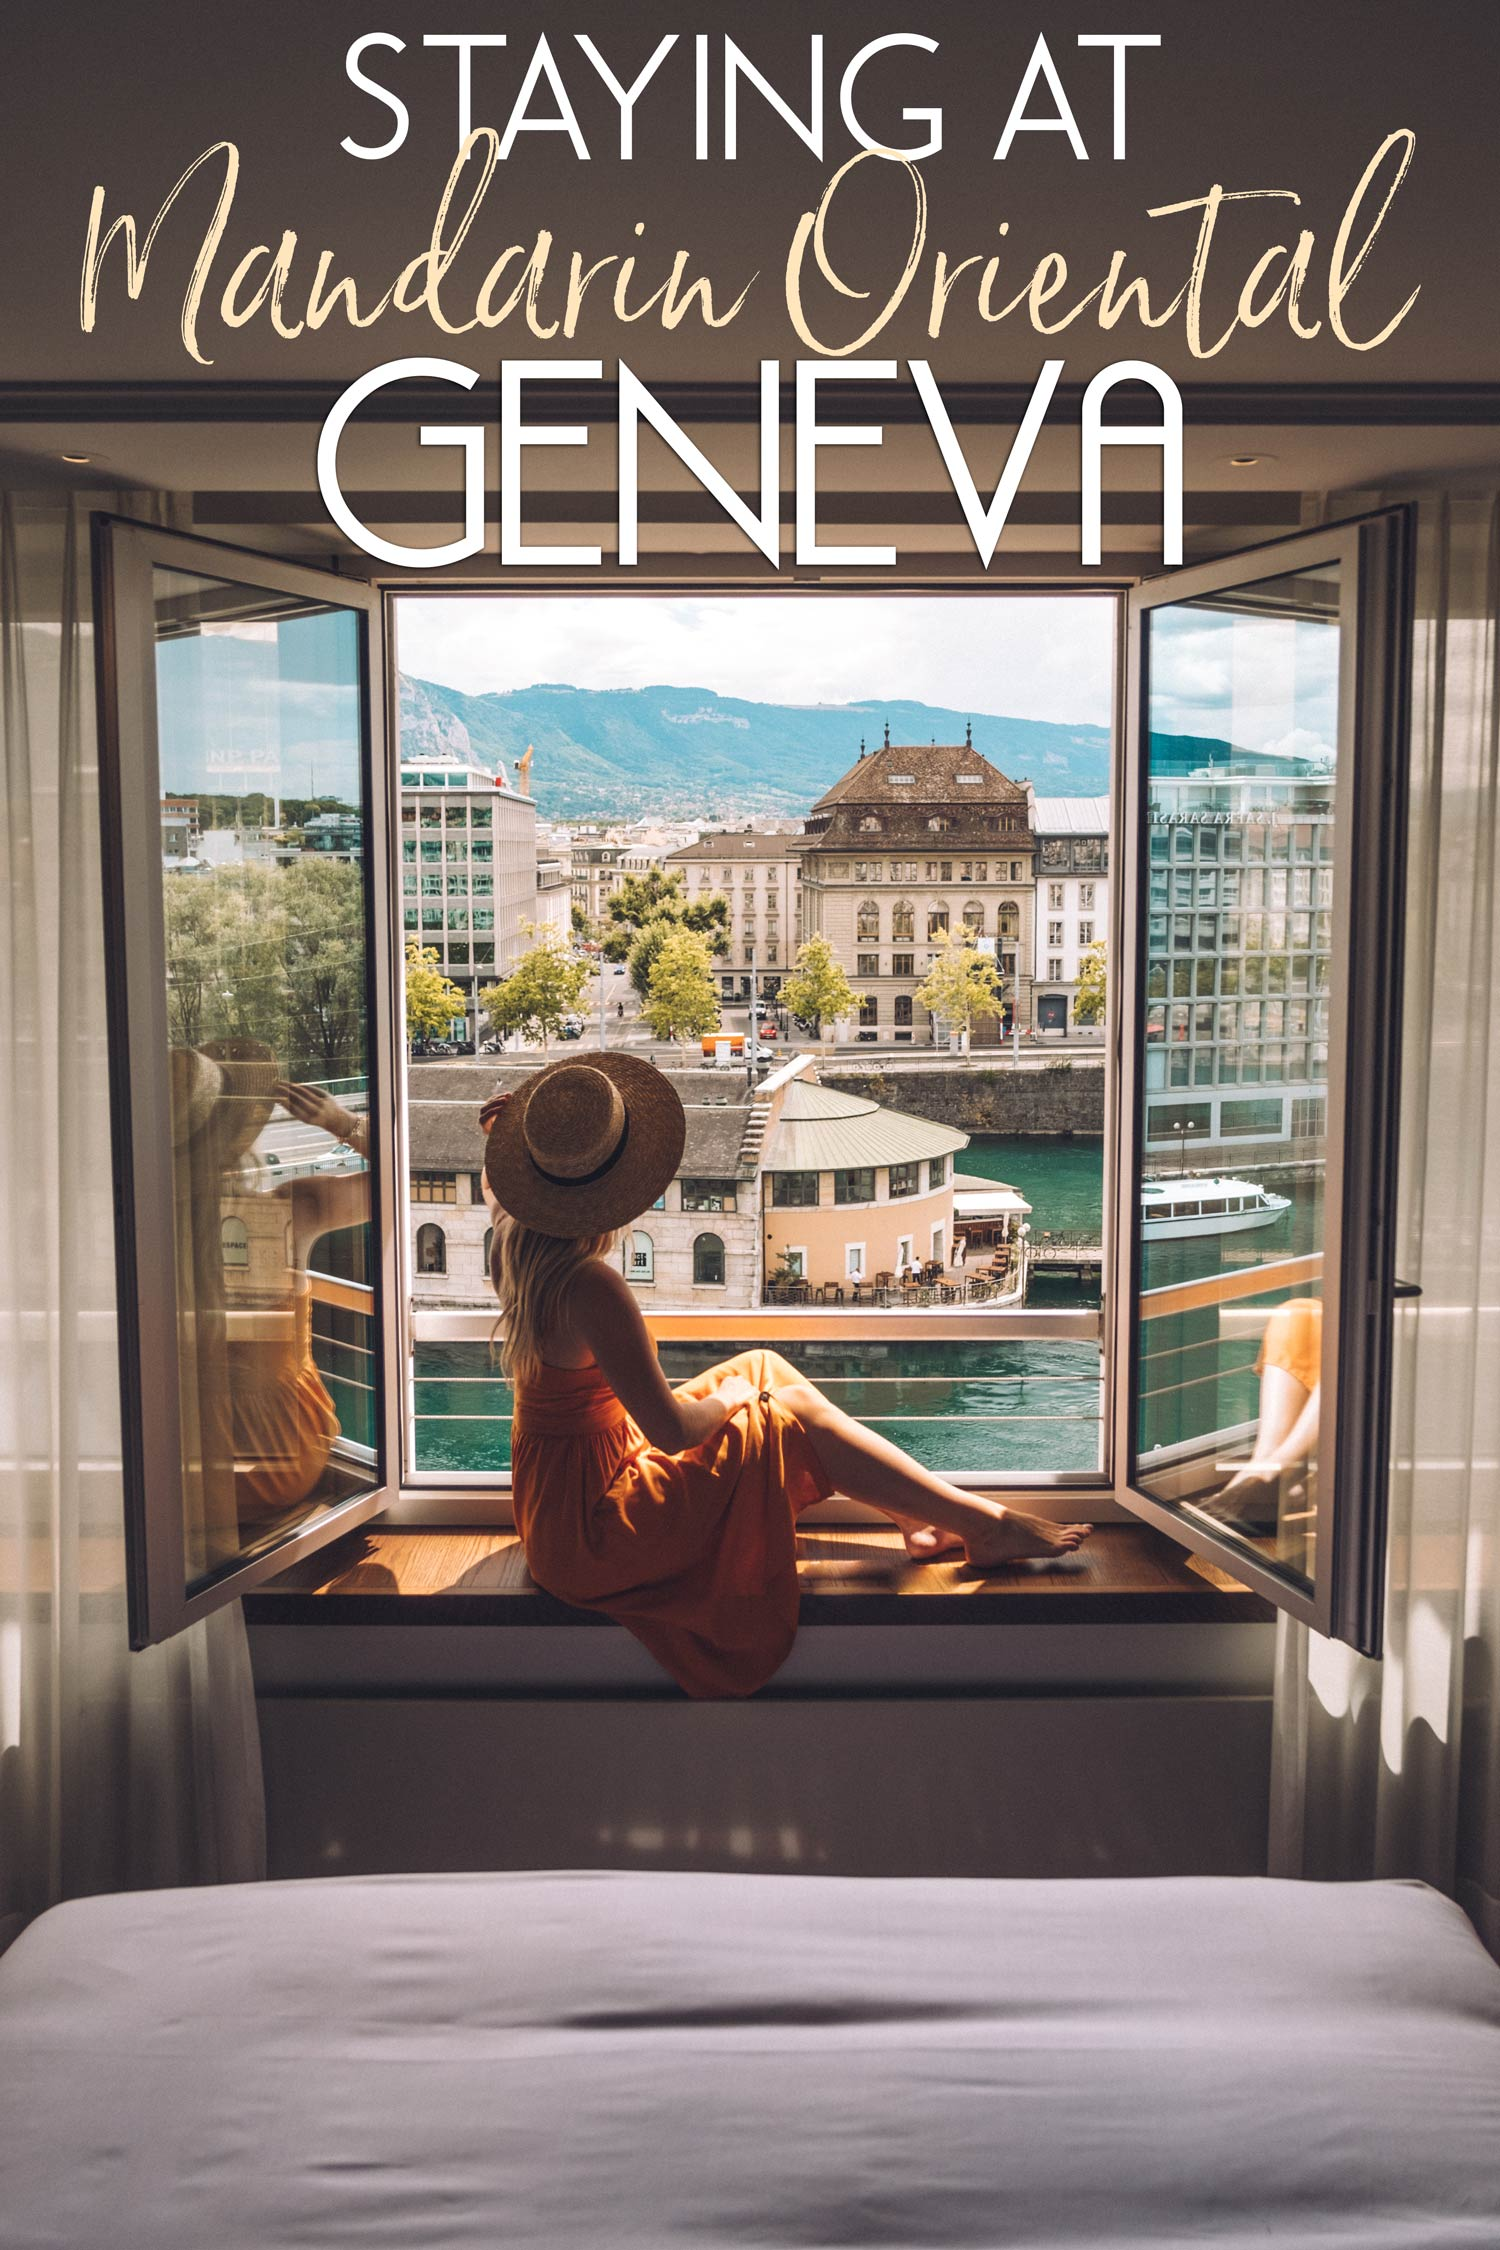 Staying at Mandarin Oriental Geneva